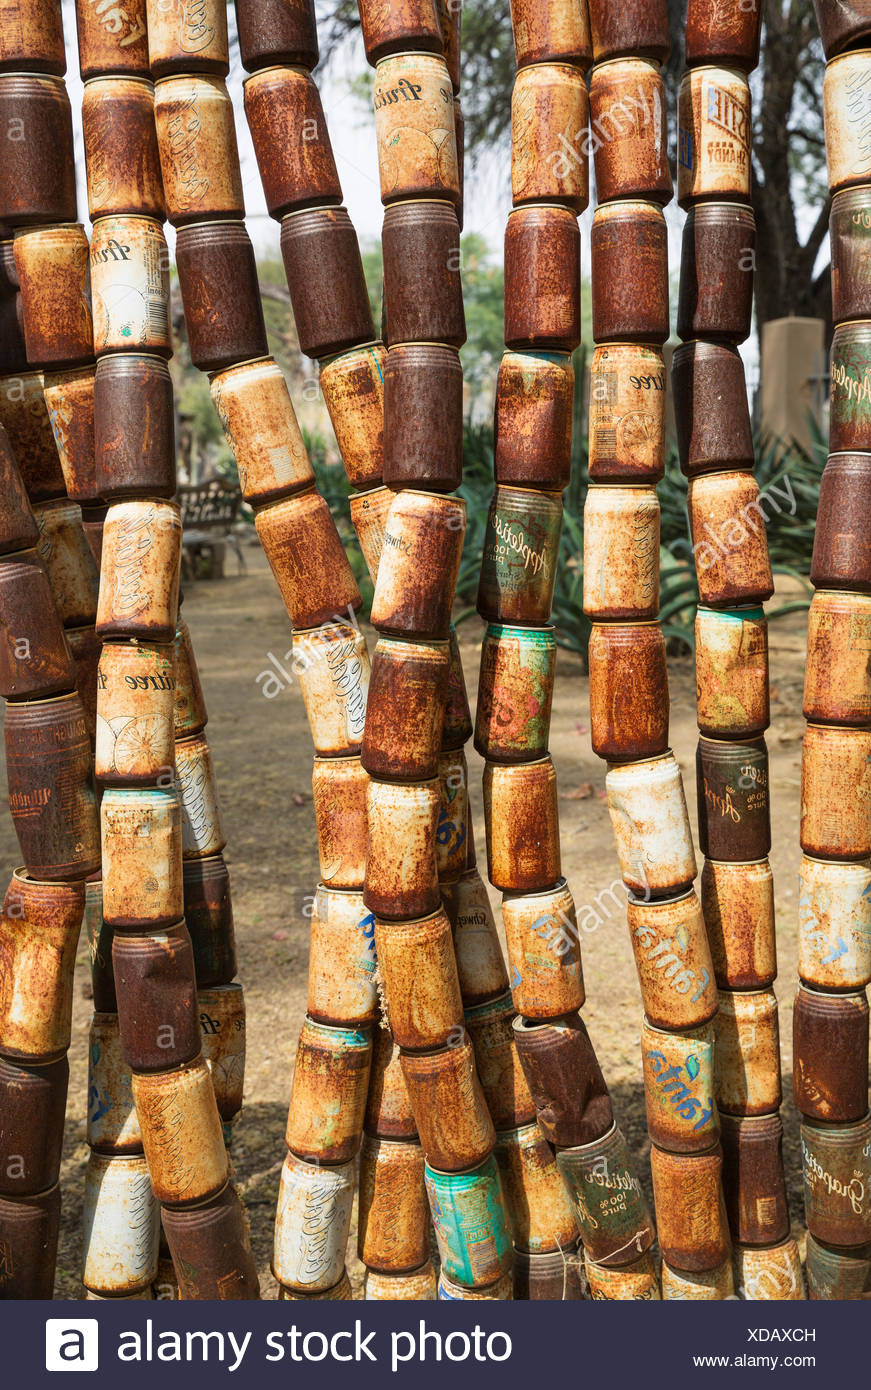 Fence made of old, rusty tins in the garden of a restaurant, recycling, Omaruru, Namibia - Stock Image